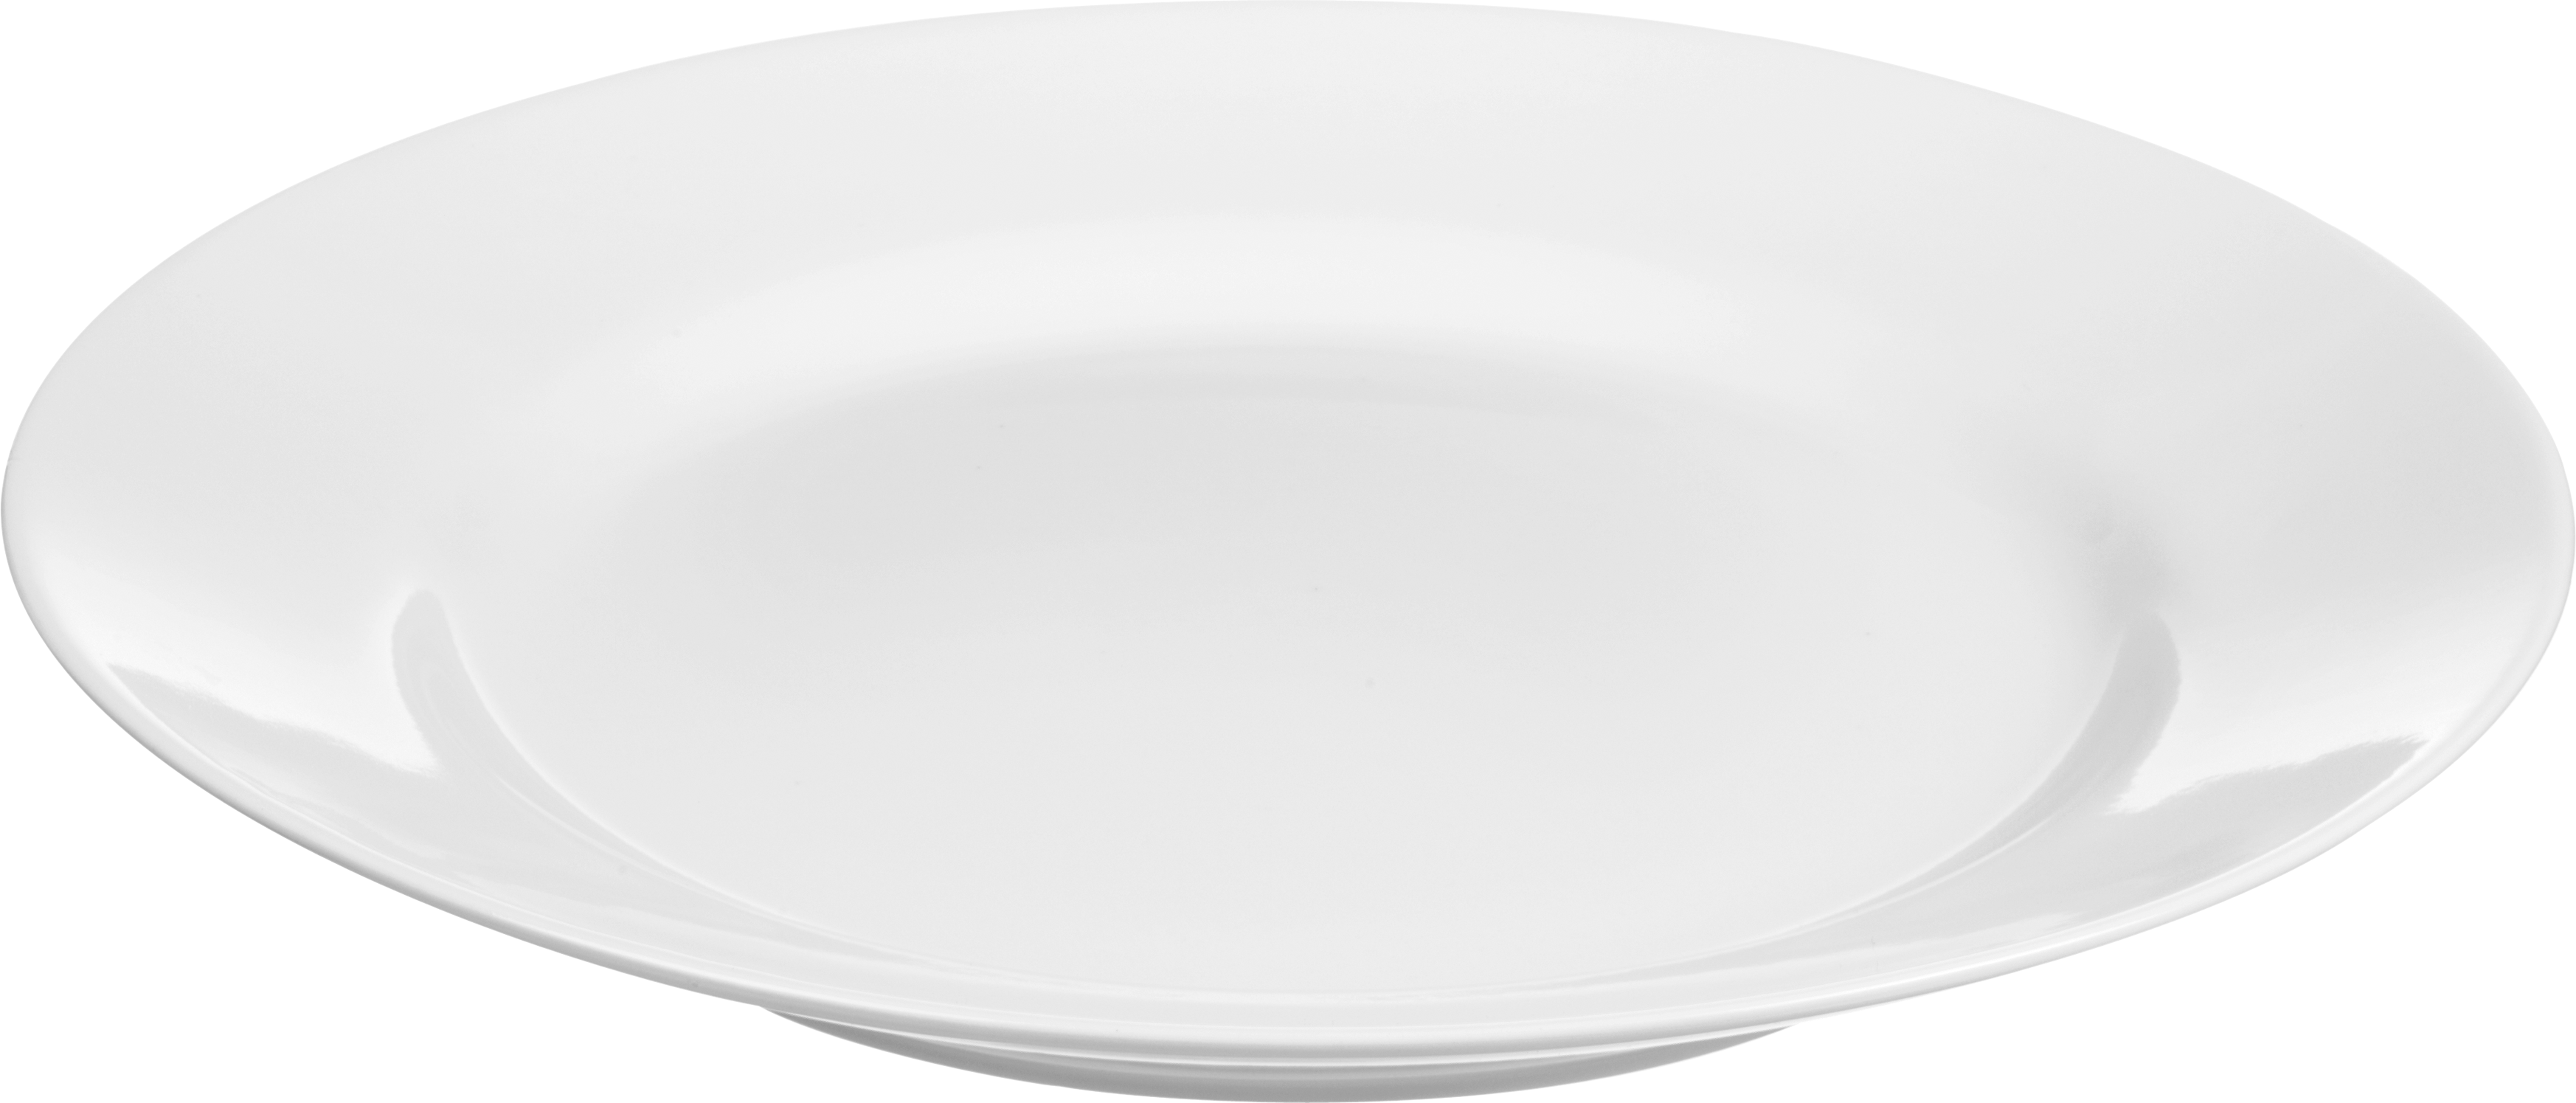 White Basic Plate Png Image Plate Png Plates White Plates